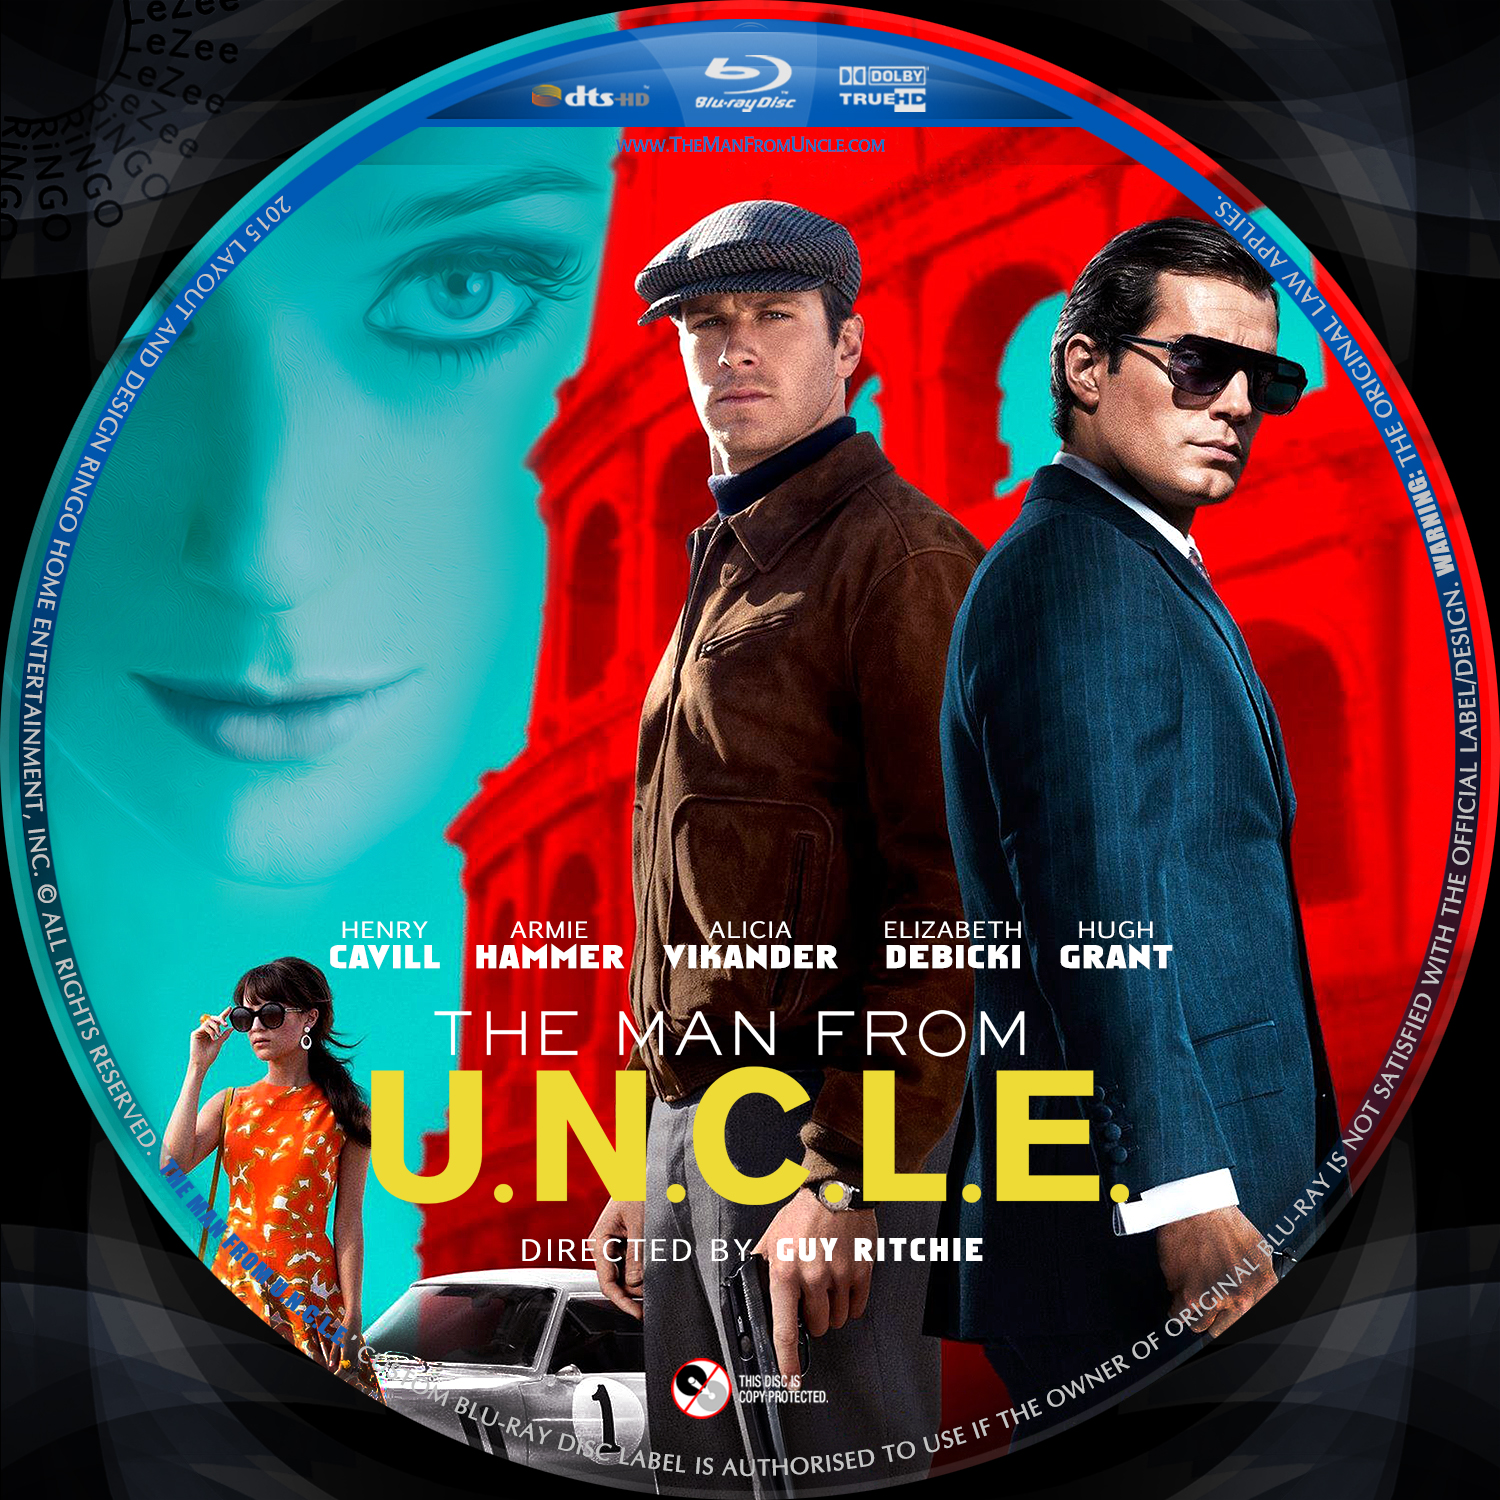 Man from uncle blu ray asda online